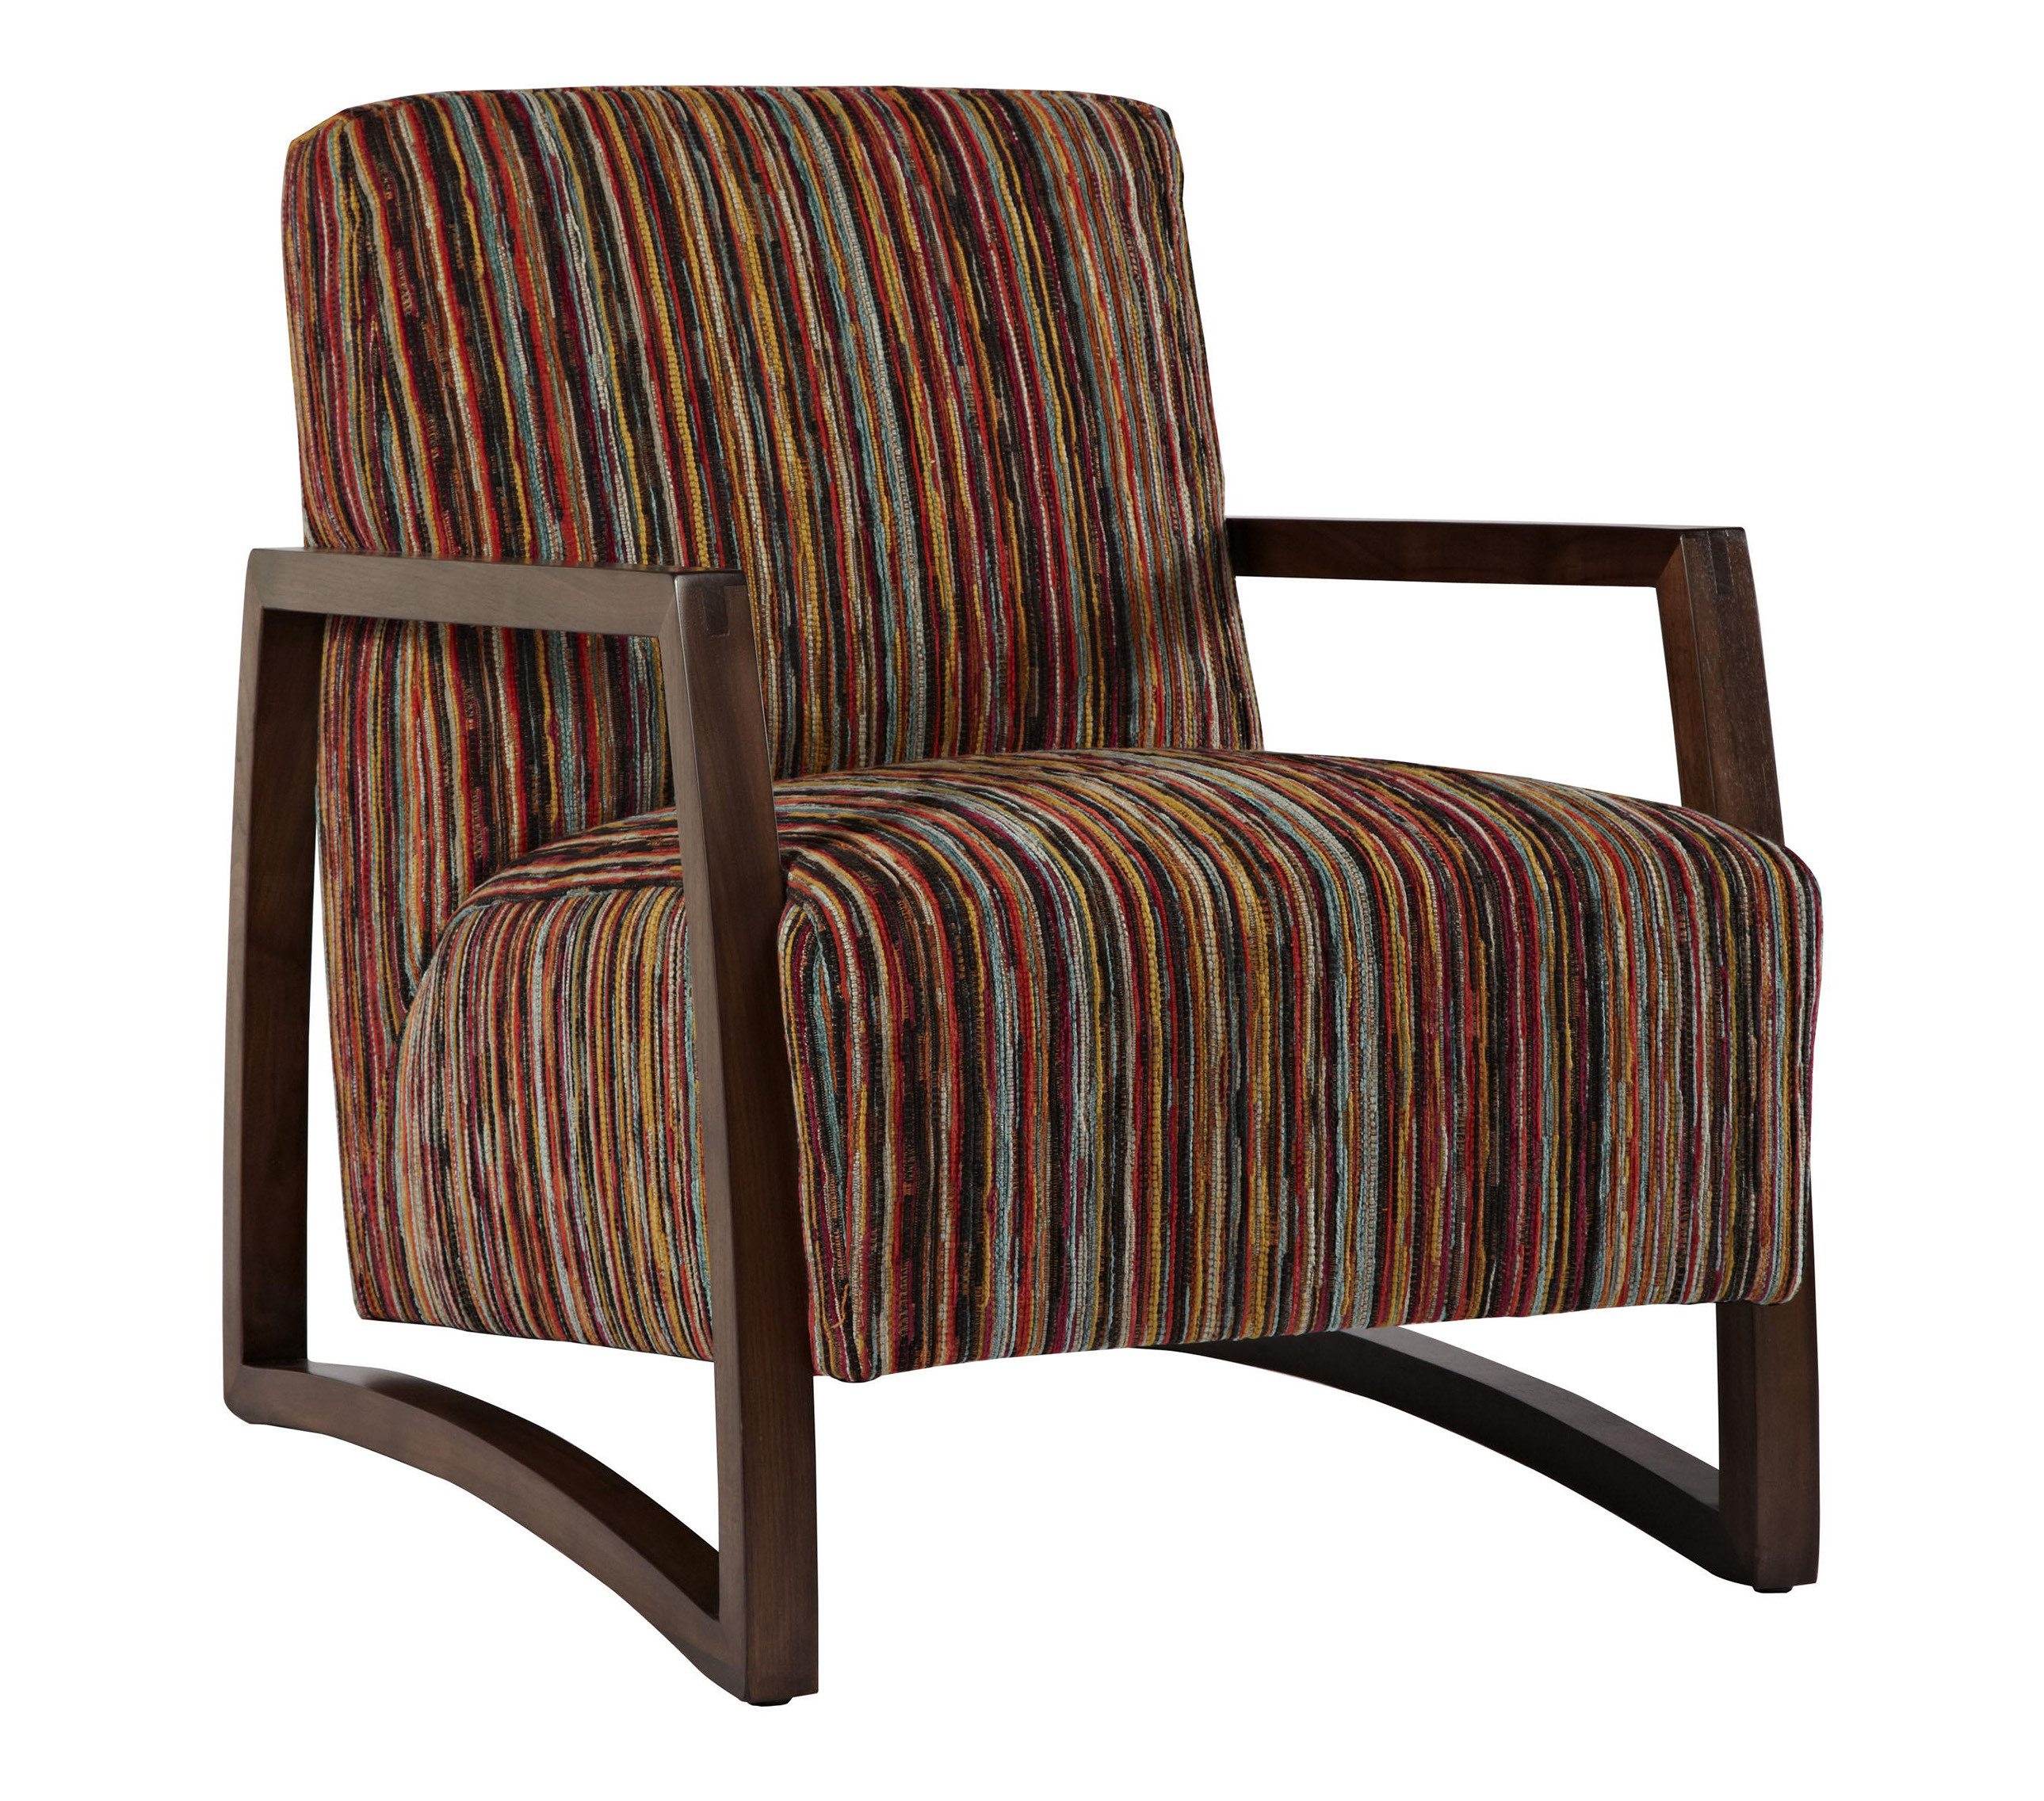 Mansfield Wood Chair Collection